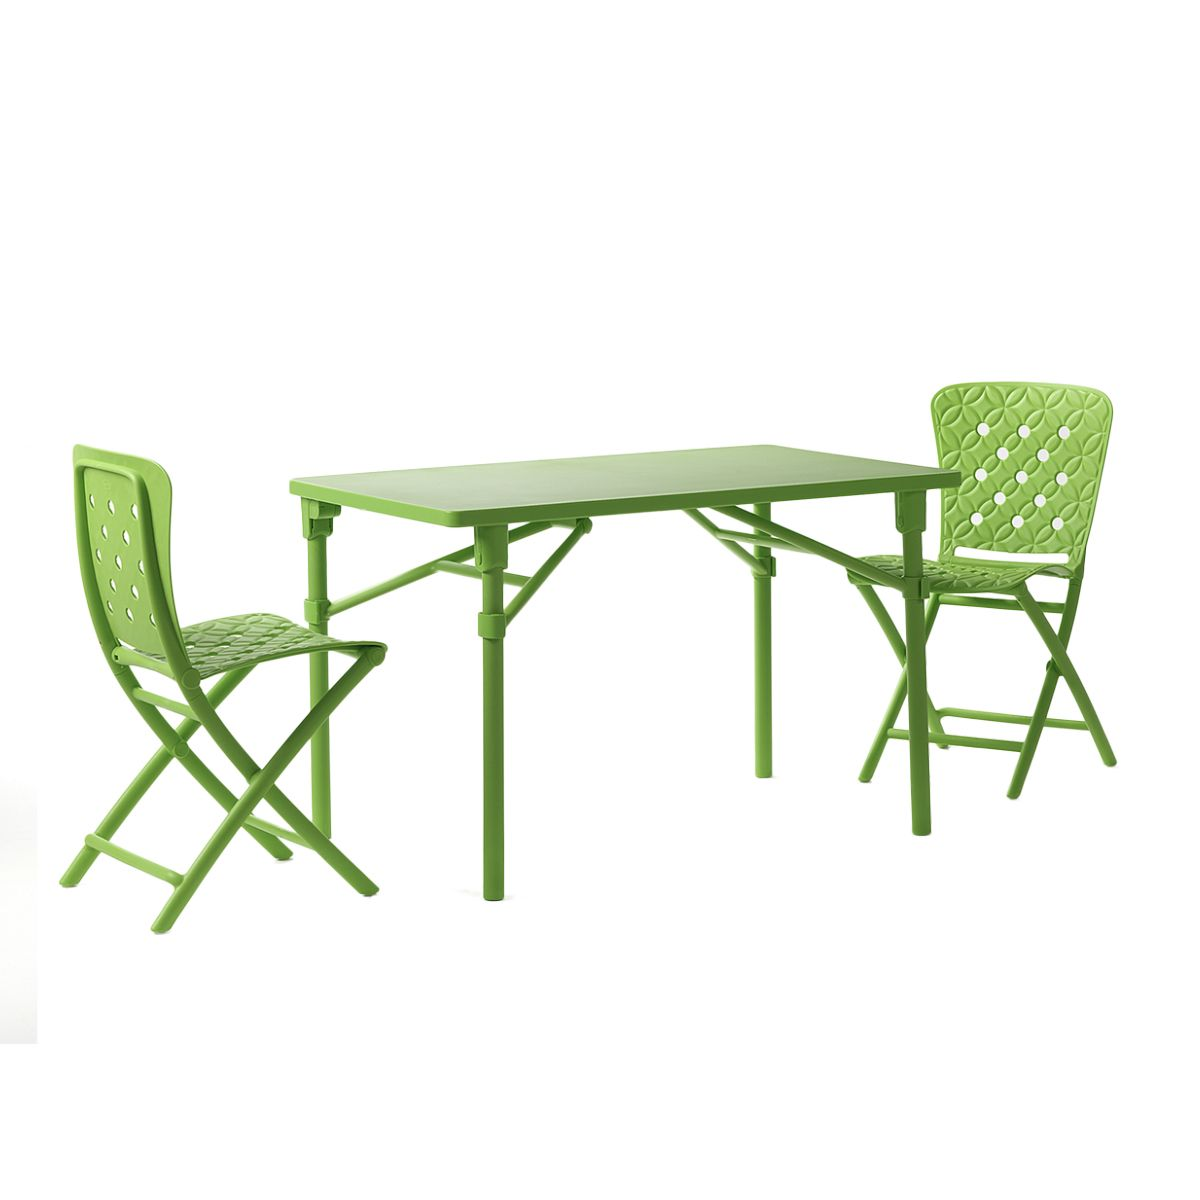 Mobilier de jardin colore d coration de maison contemporaine for Decoration jardin colore